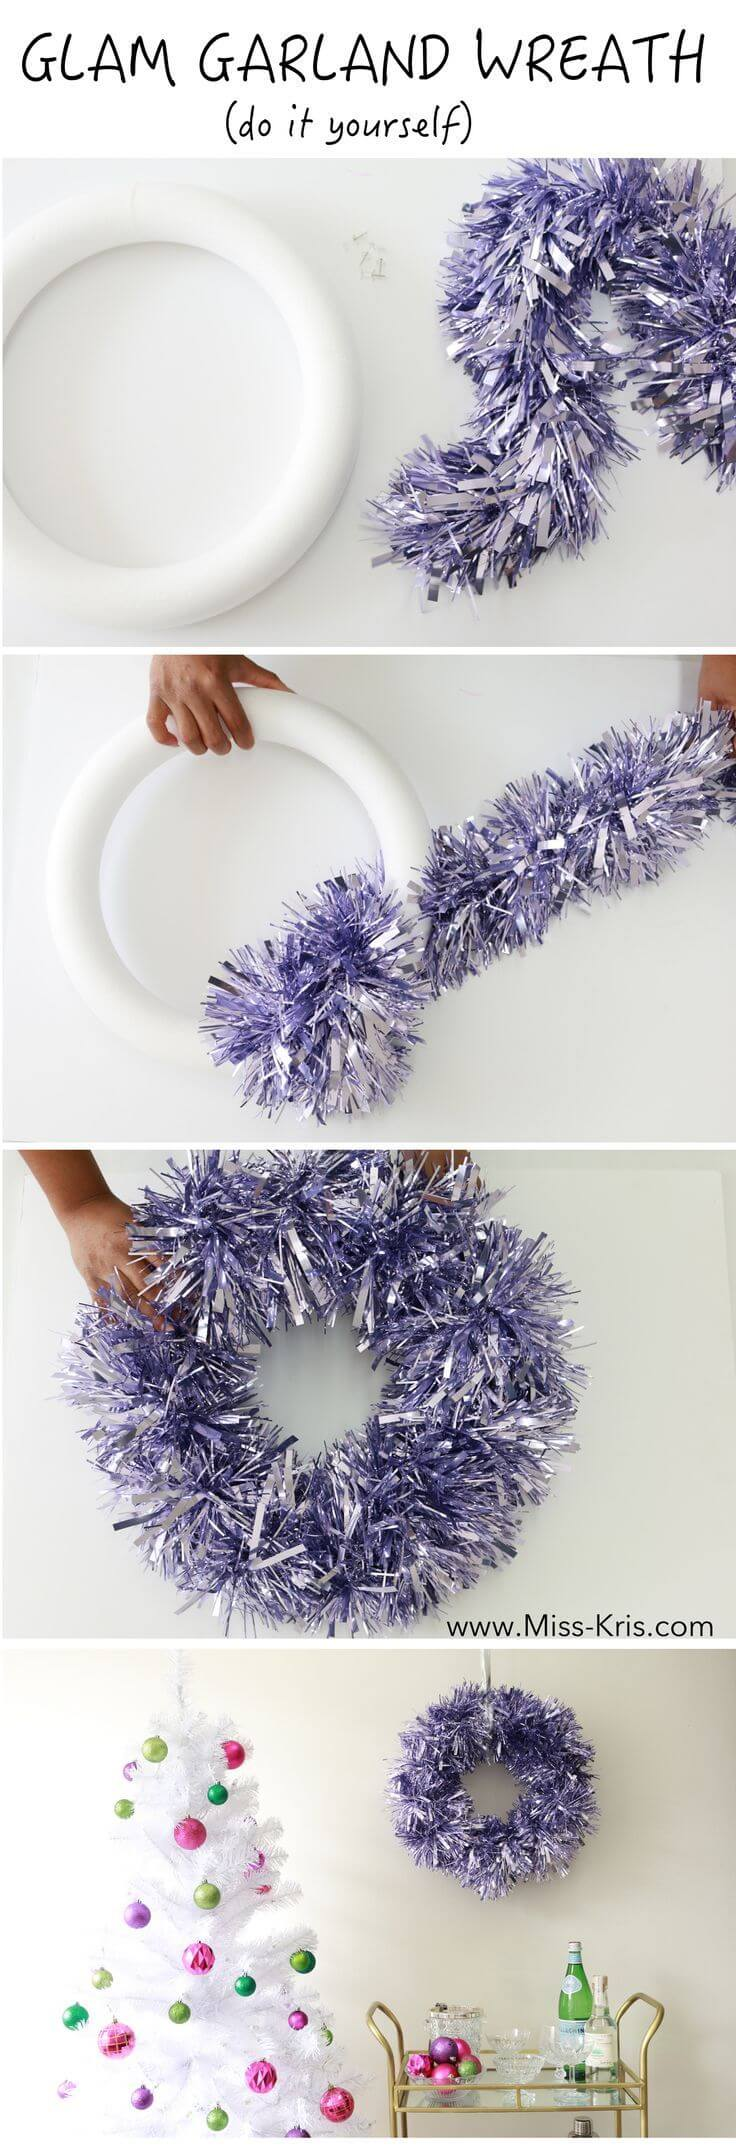 From Garland to Wreath in 5 Minutes